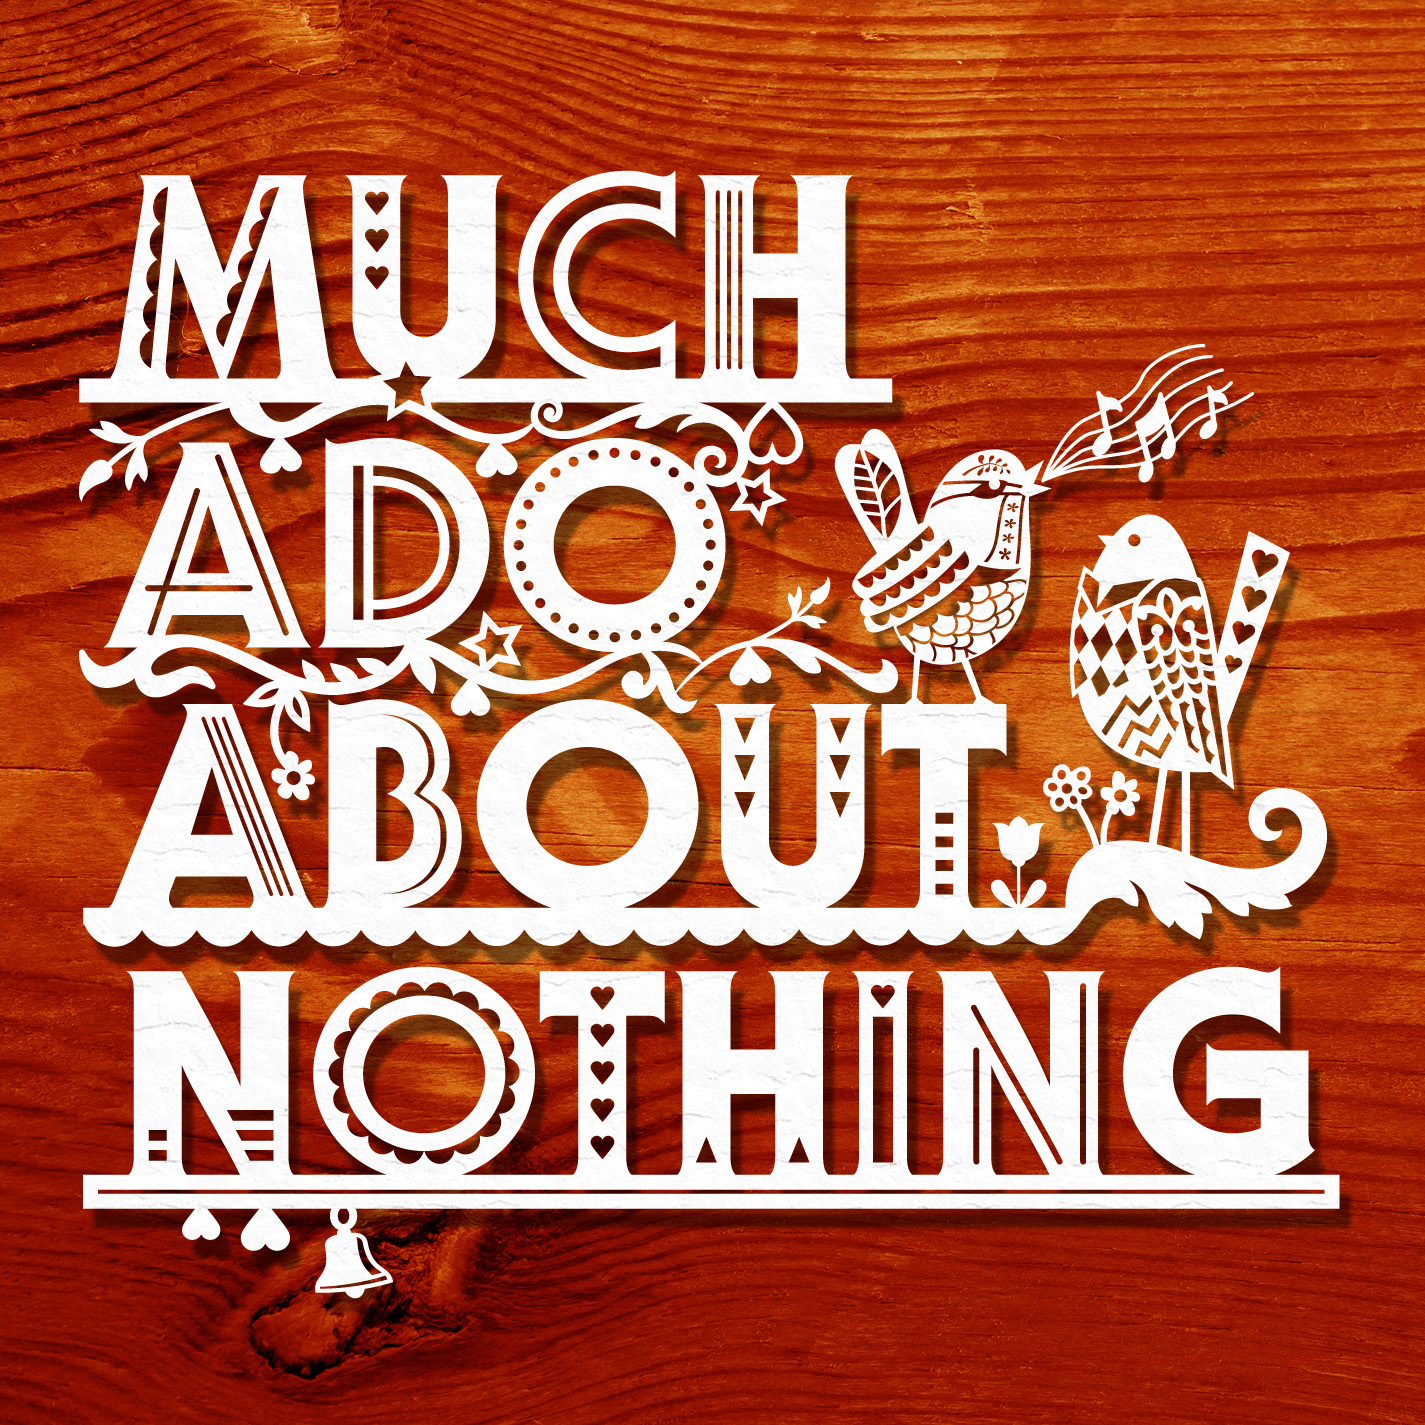 What does Shakespeare show about relationships in Much Ado About Nothing ?